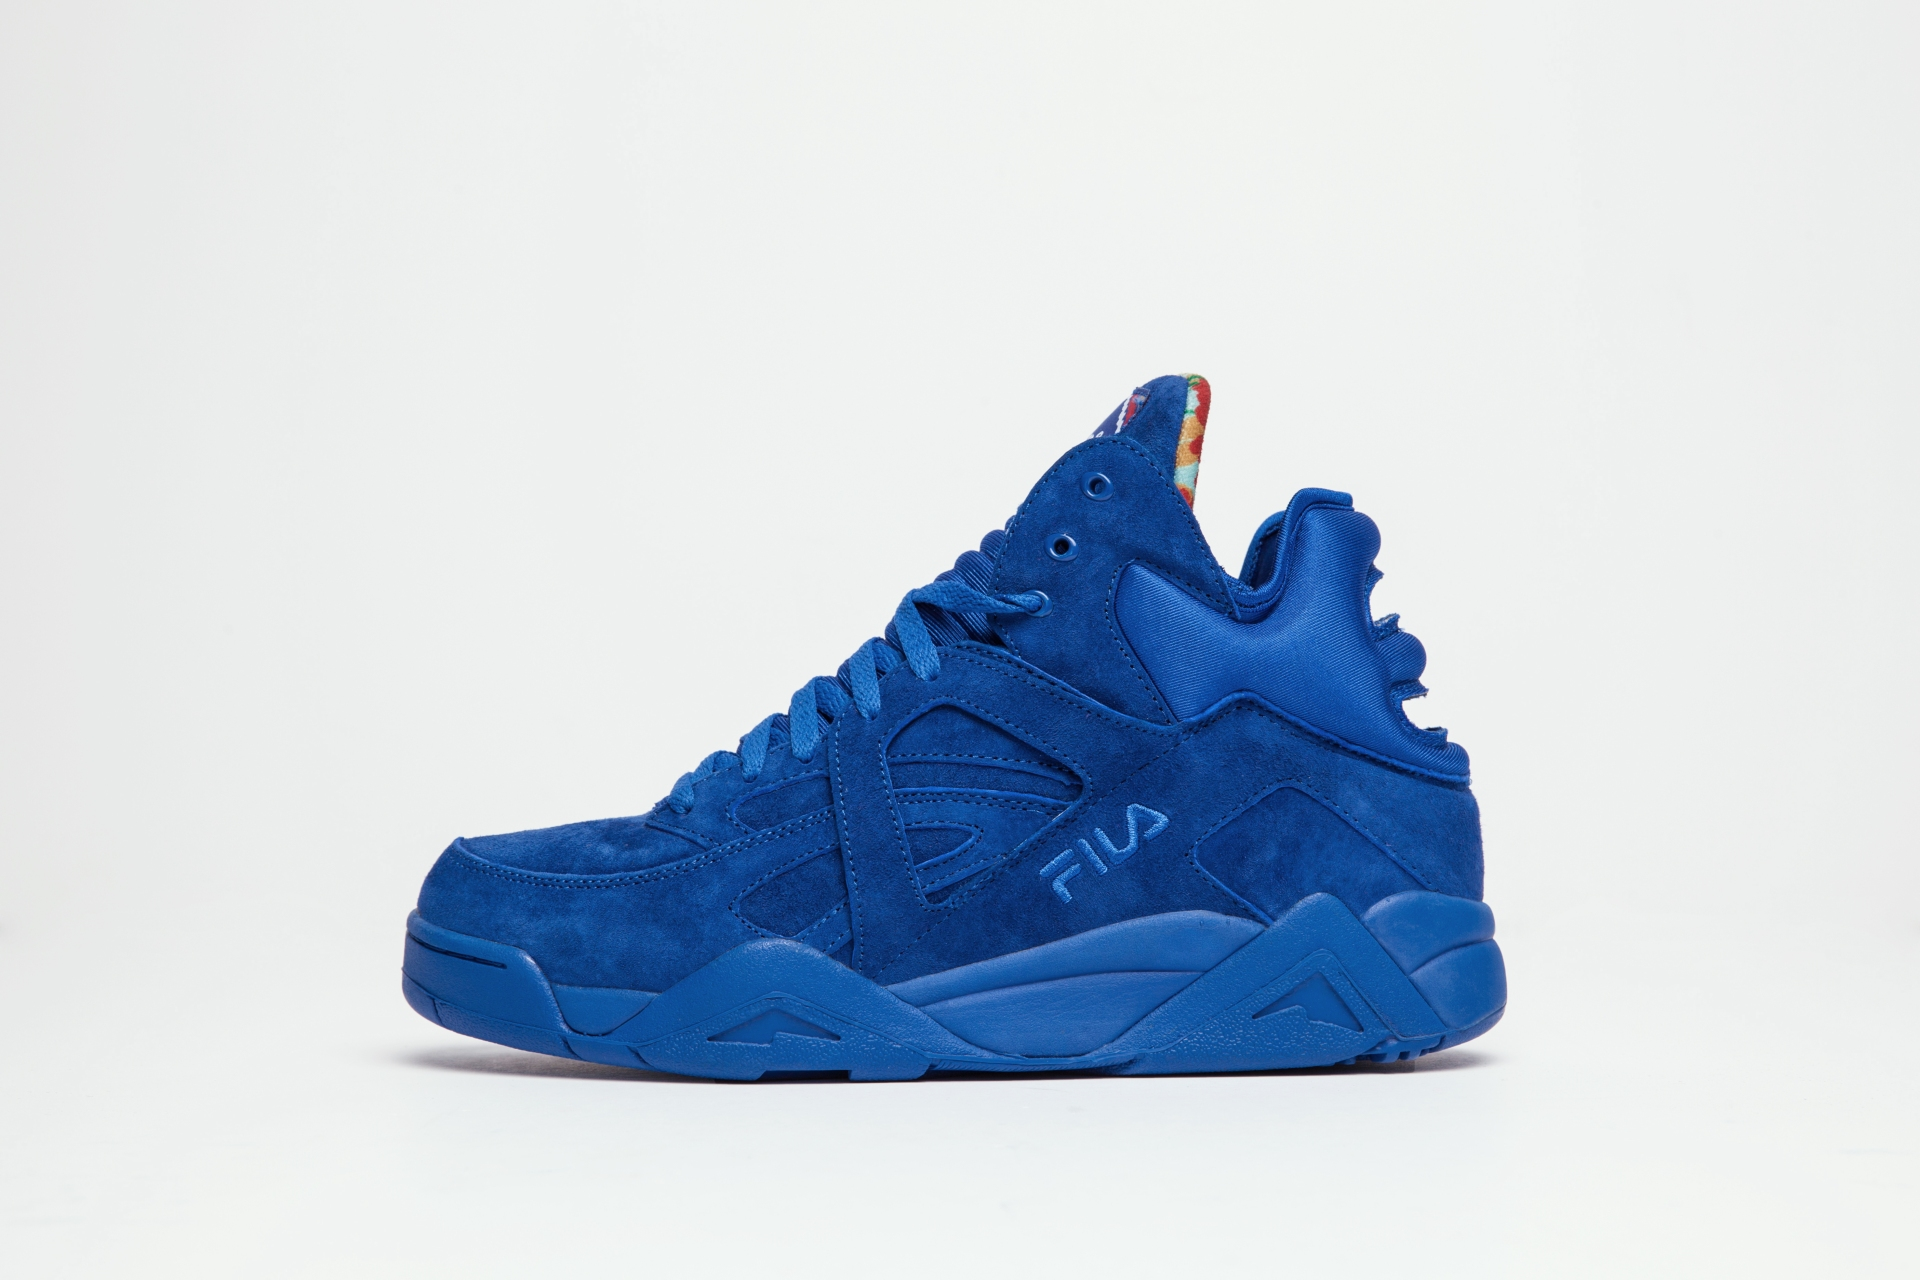 FILA and Lemar & Dauley Return With The #WavvyBlue Cage